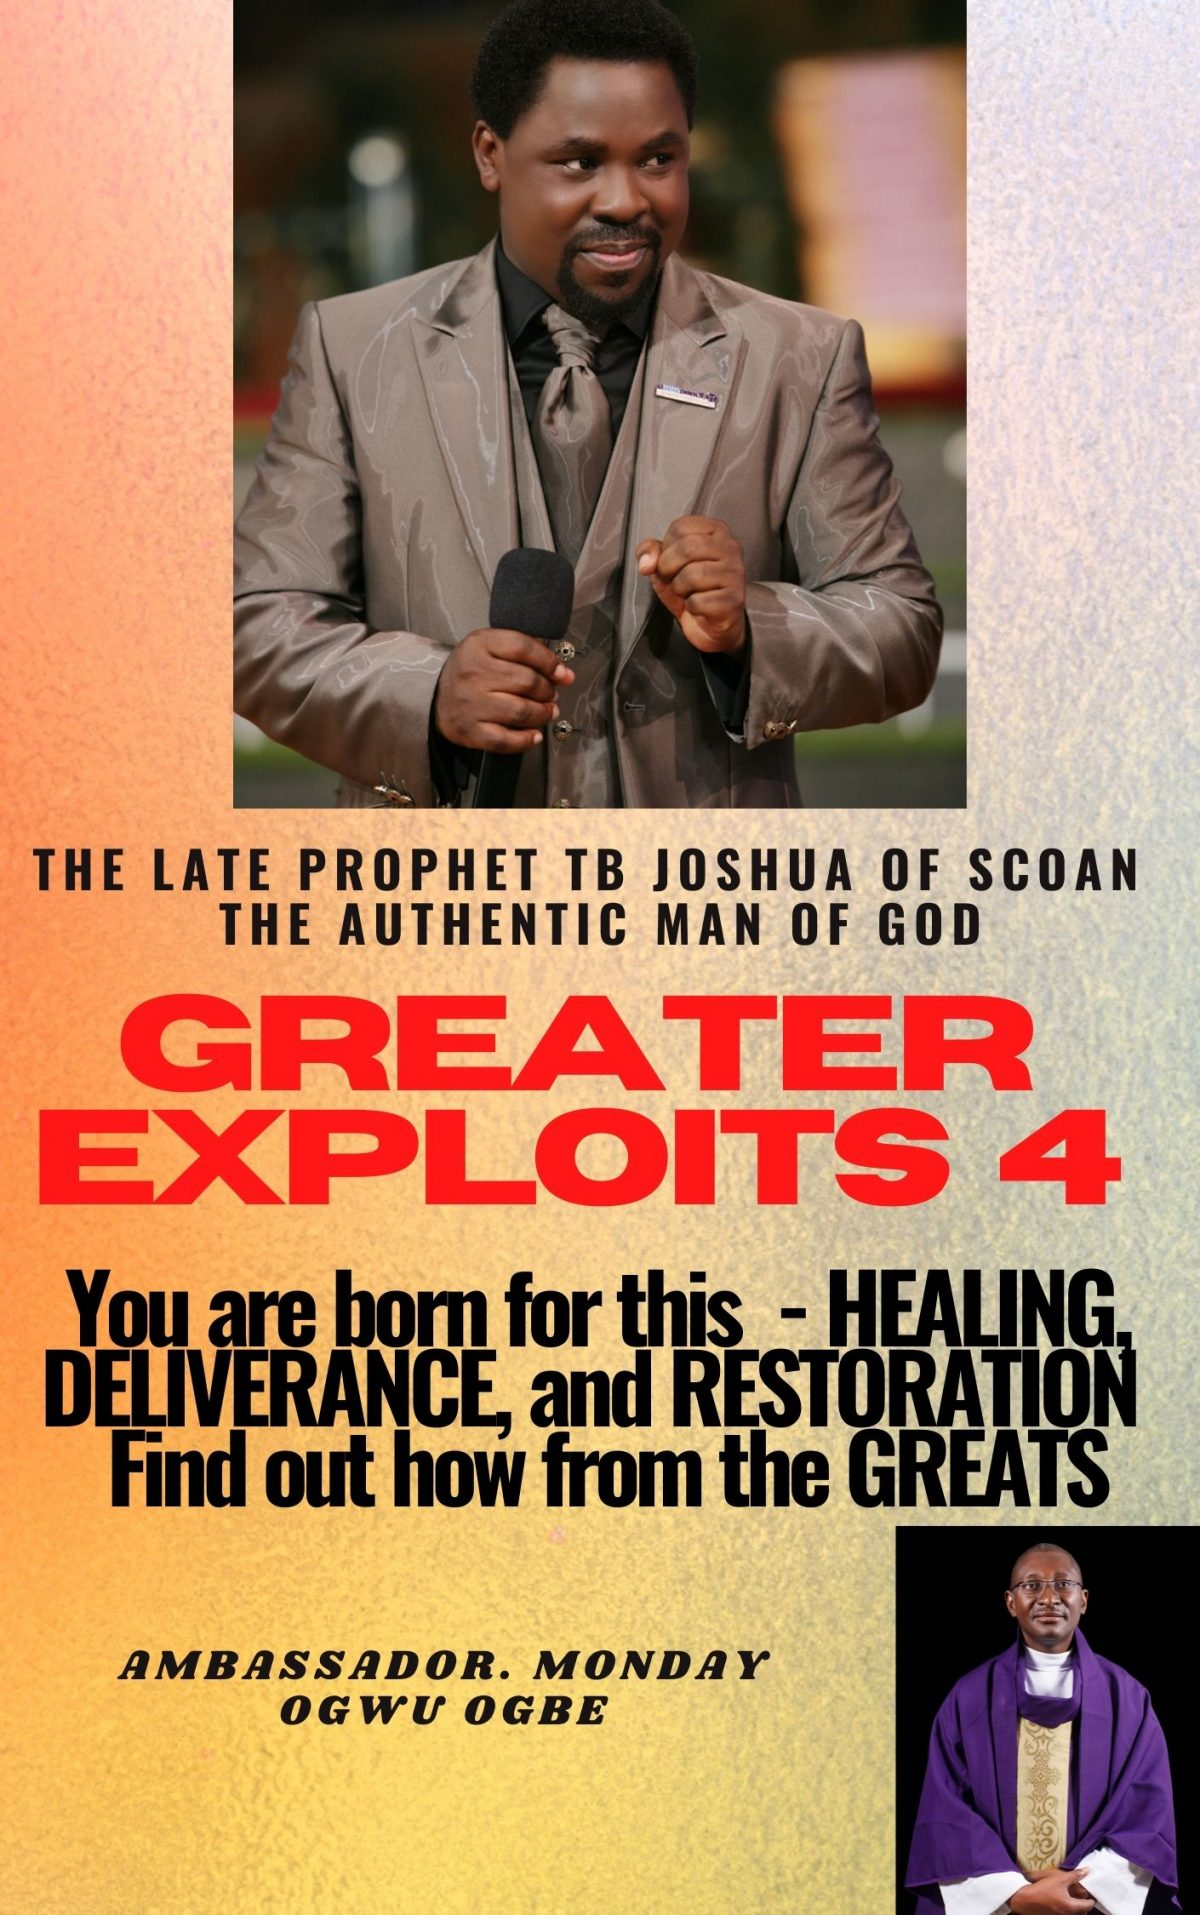 Greater Exploits – 4 The Late Prophet TB Joshua of SCOAN – The Authentic Man of God You are Born for This – Healing, Deliverance and Restoration – Find out how from the Greats